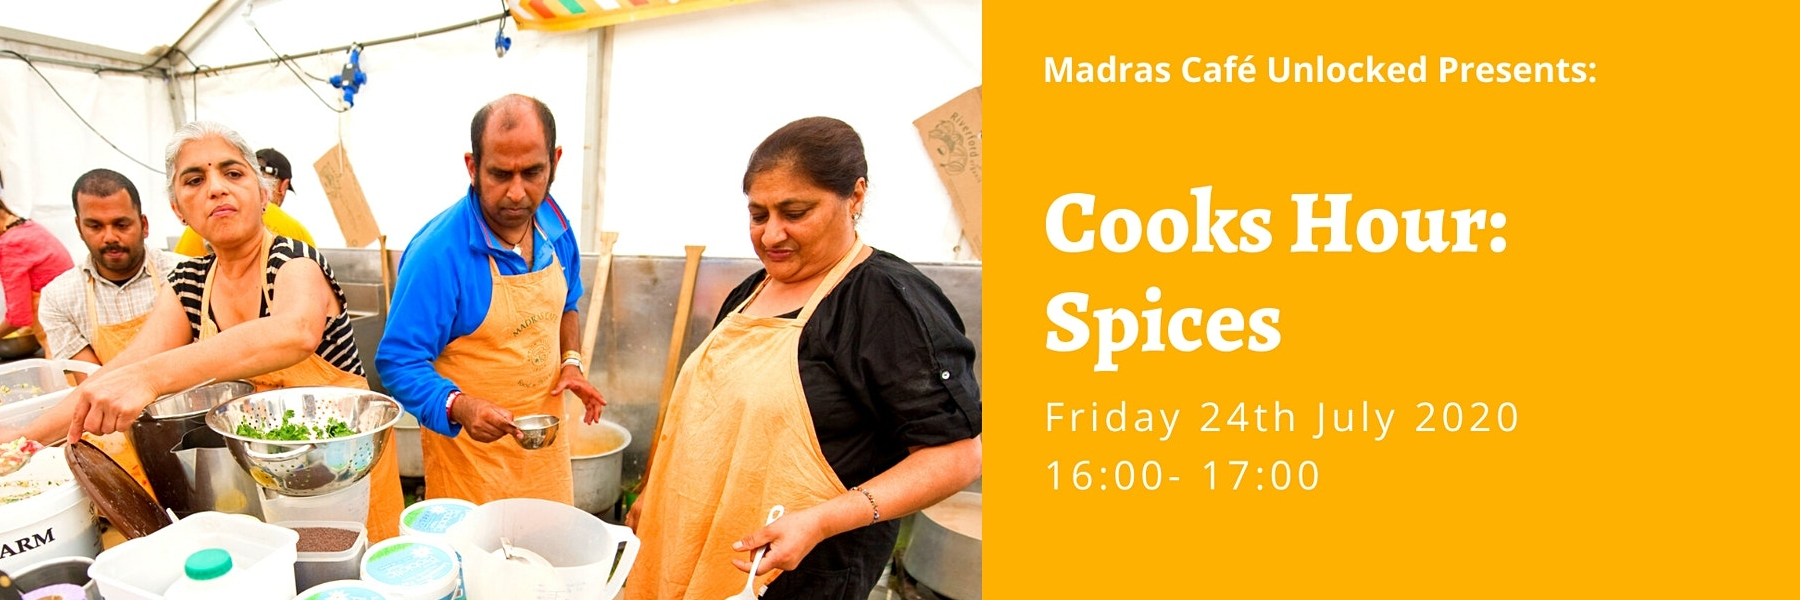 Cooks Hour: Spices Without Borders 1